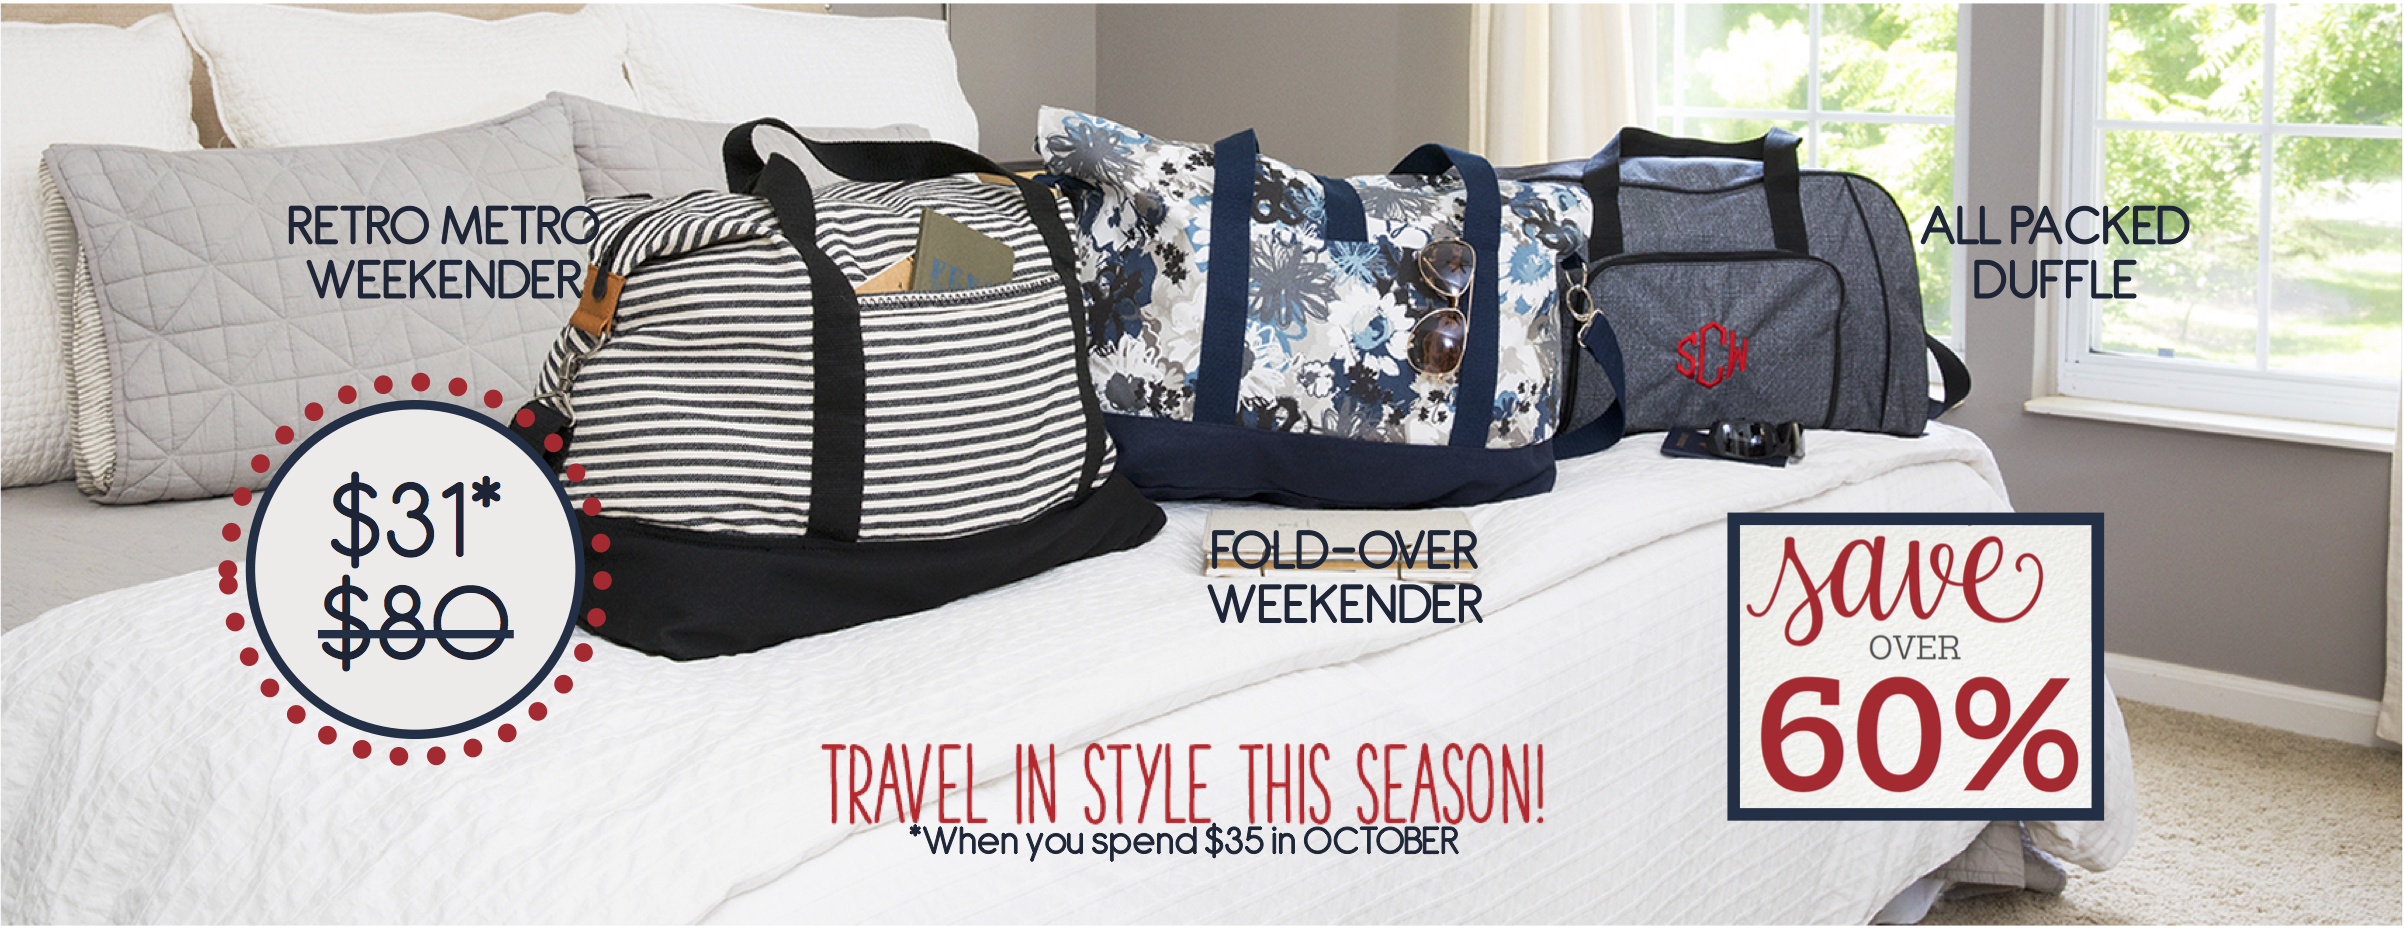 Thirty one november customer special 2014 - Thirty One Gifts Travel In Style